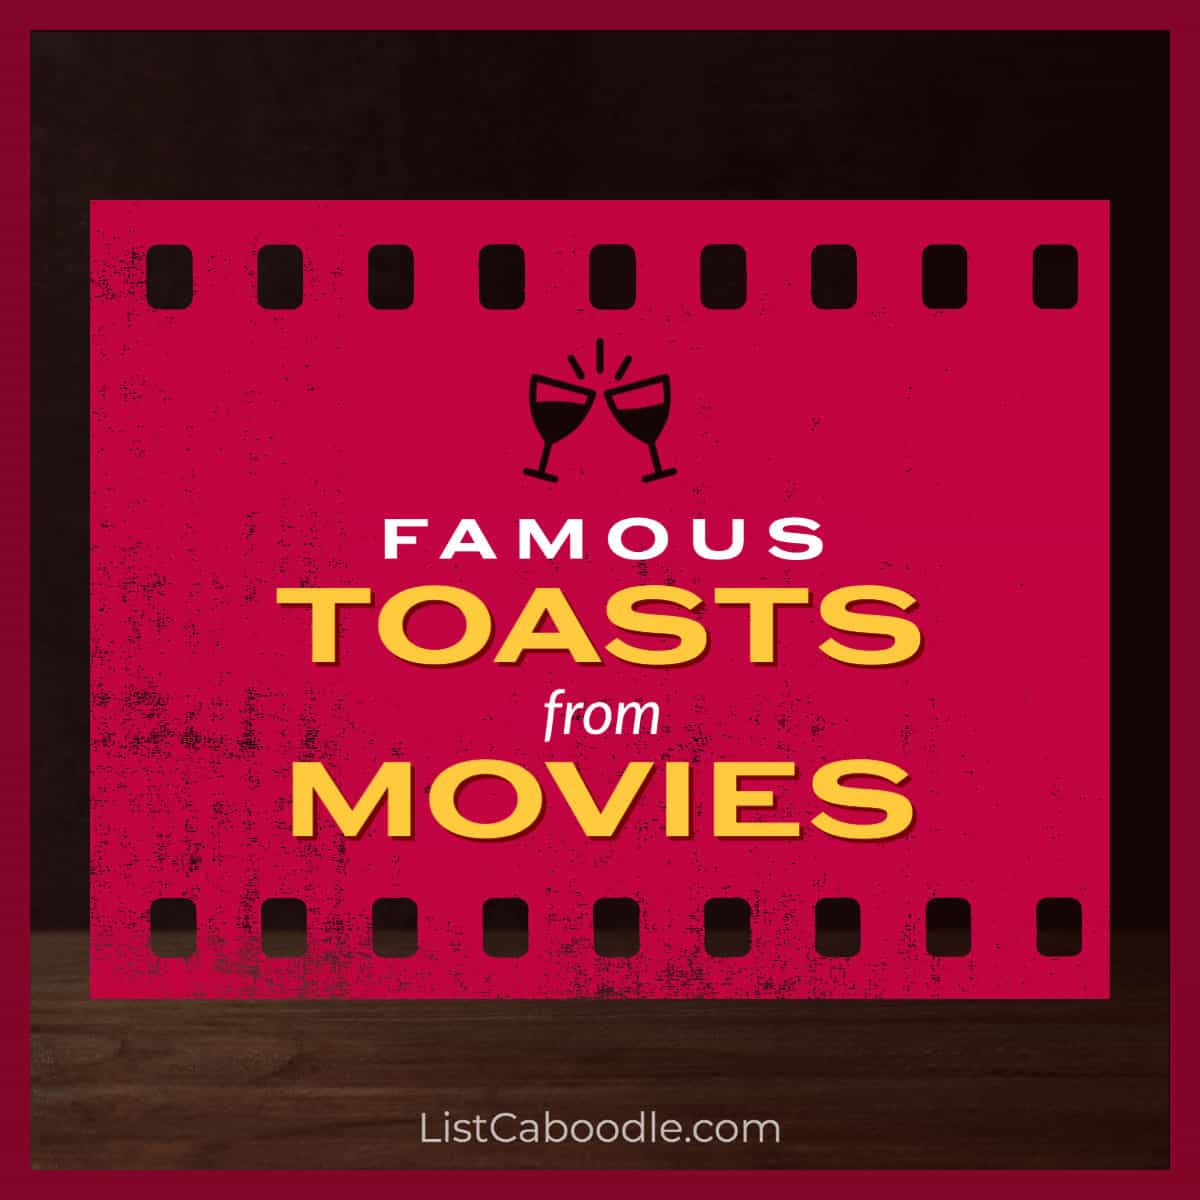 Toasts from movies image